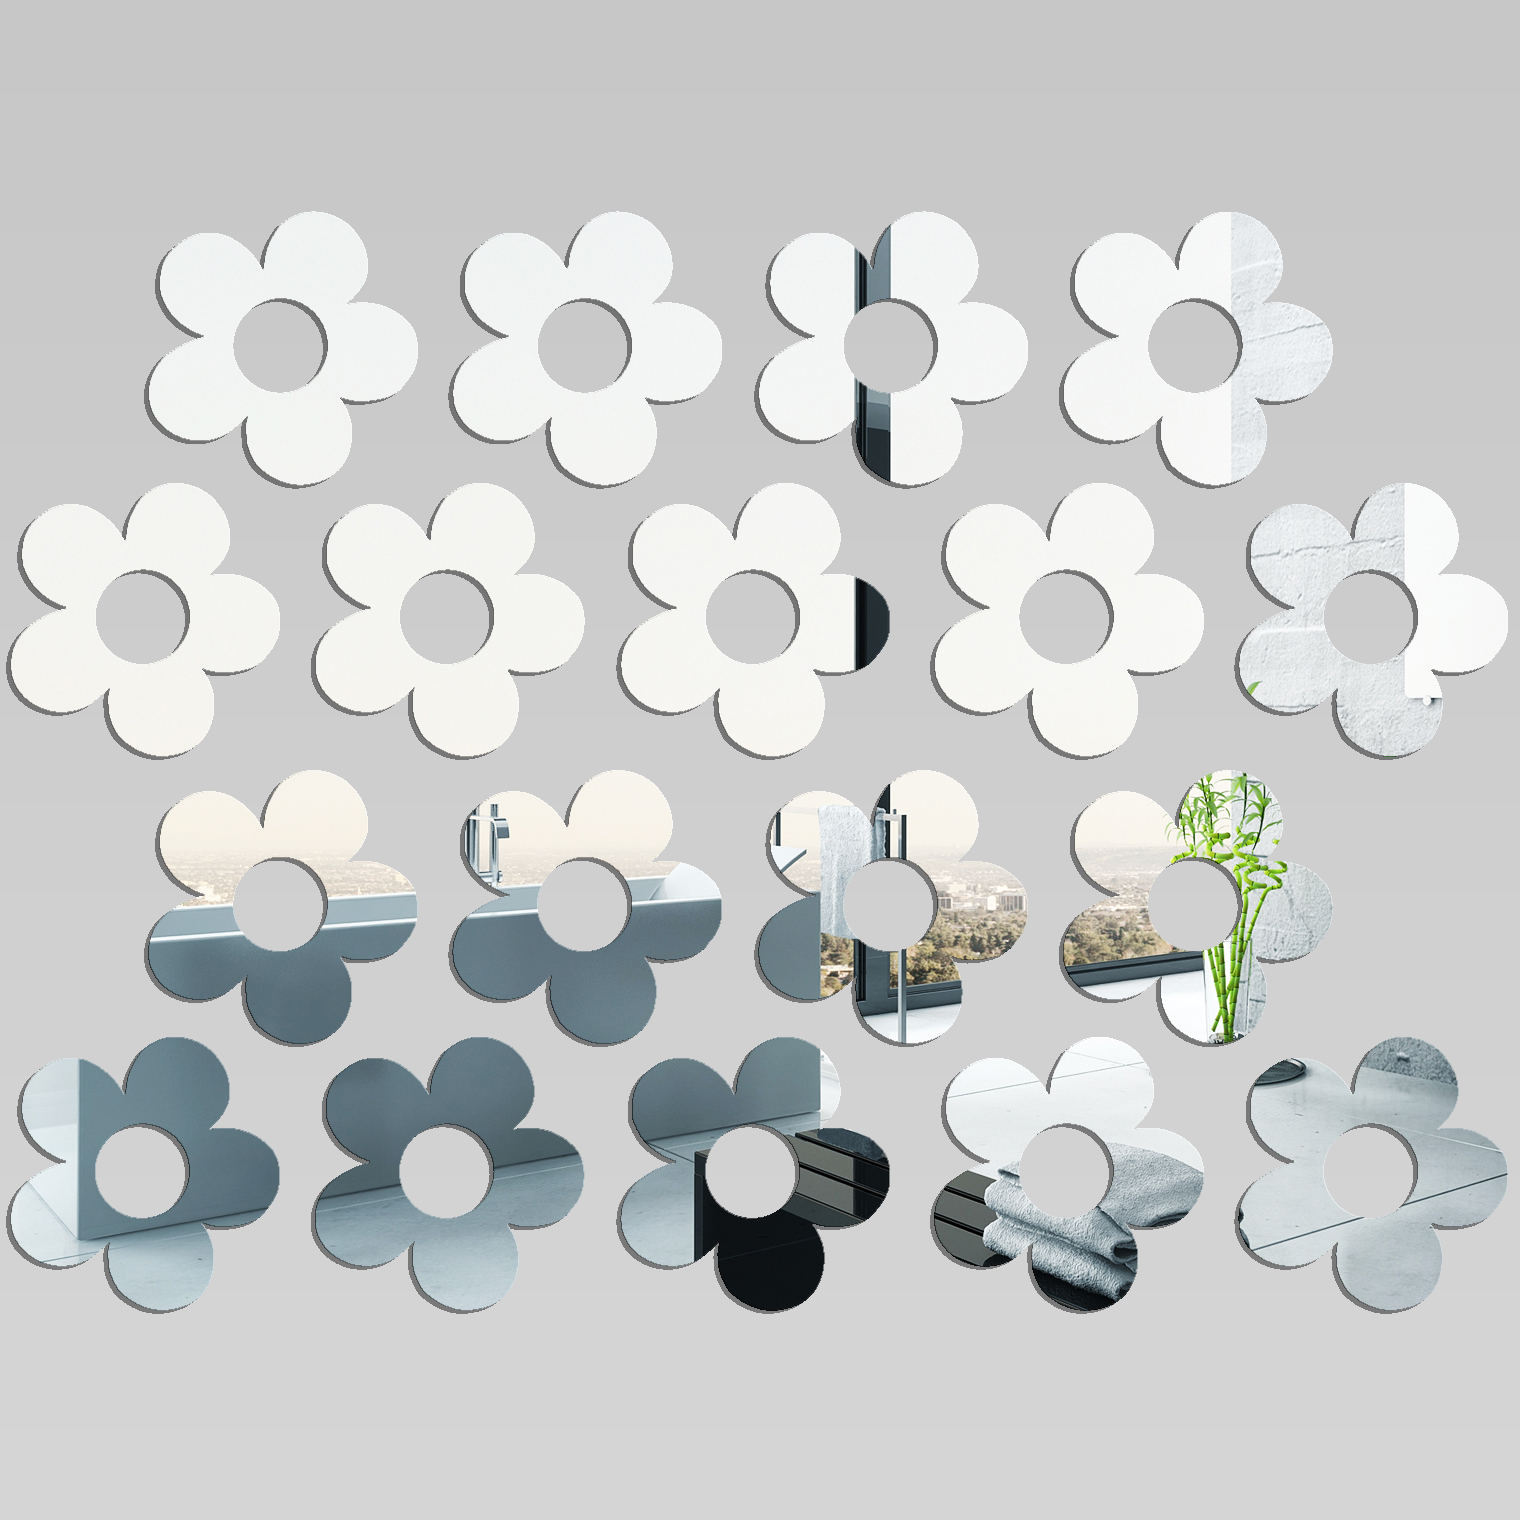 Adesivi follia kit specchio acrilico plexiglass fiori for Espejos finos decorativos